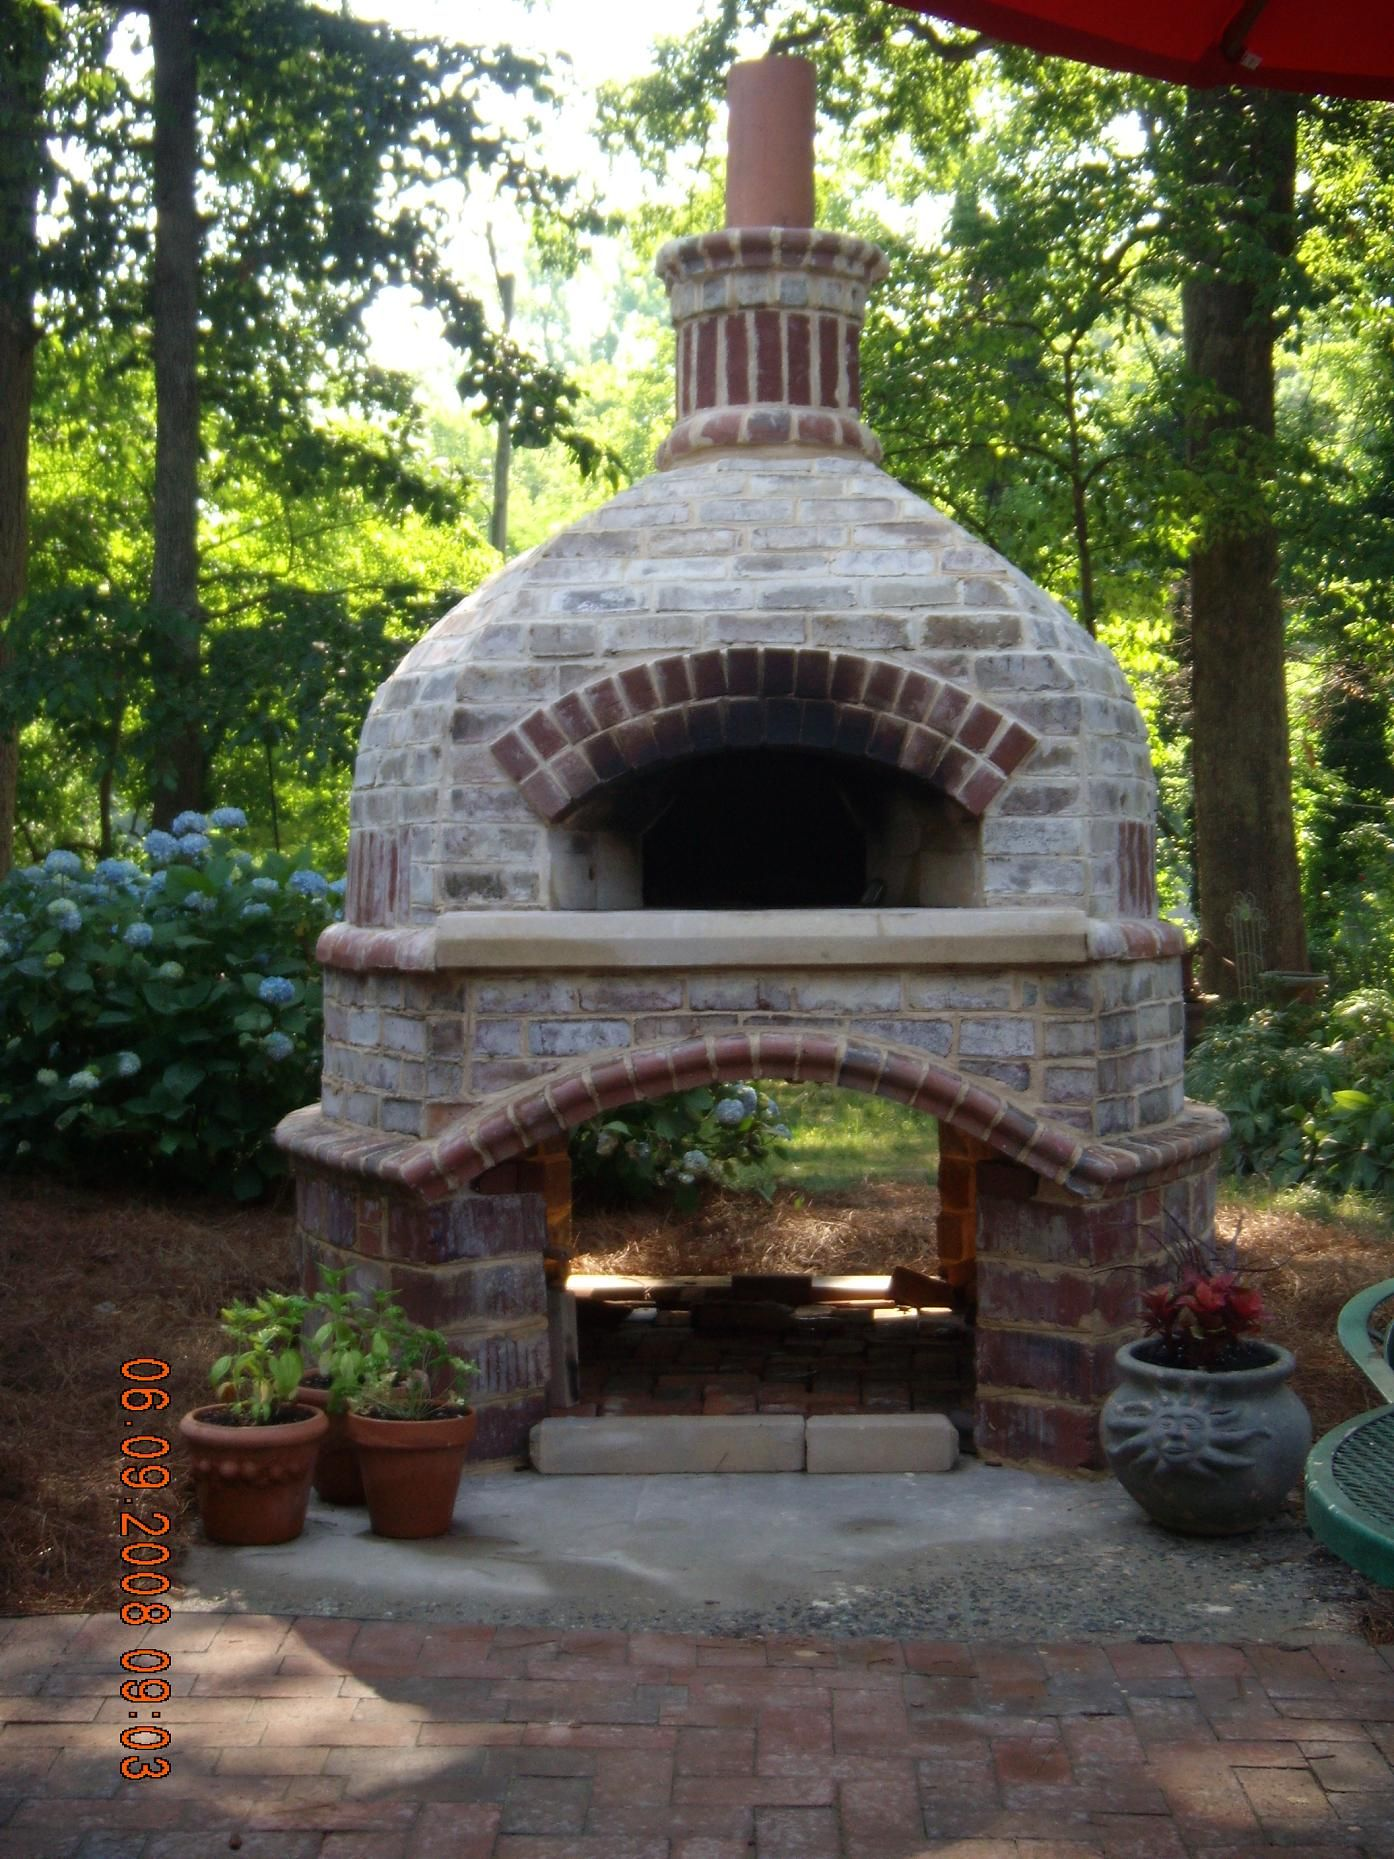 my sister wants an outdoor brick oven and i think she should get